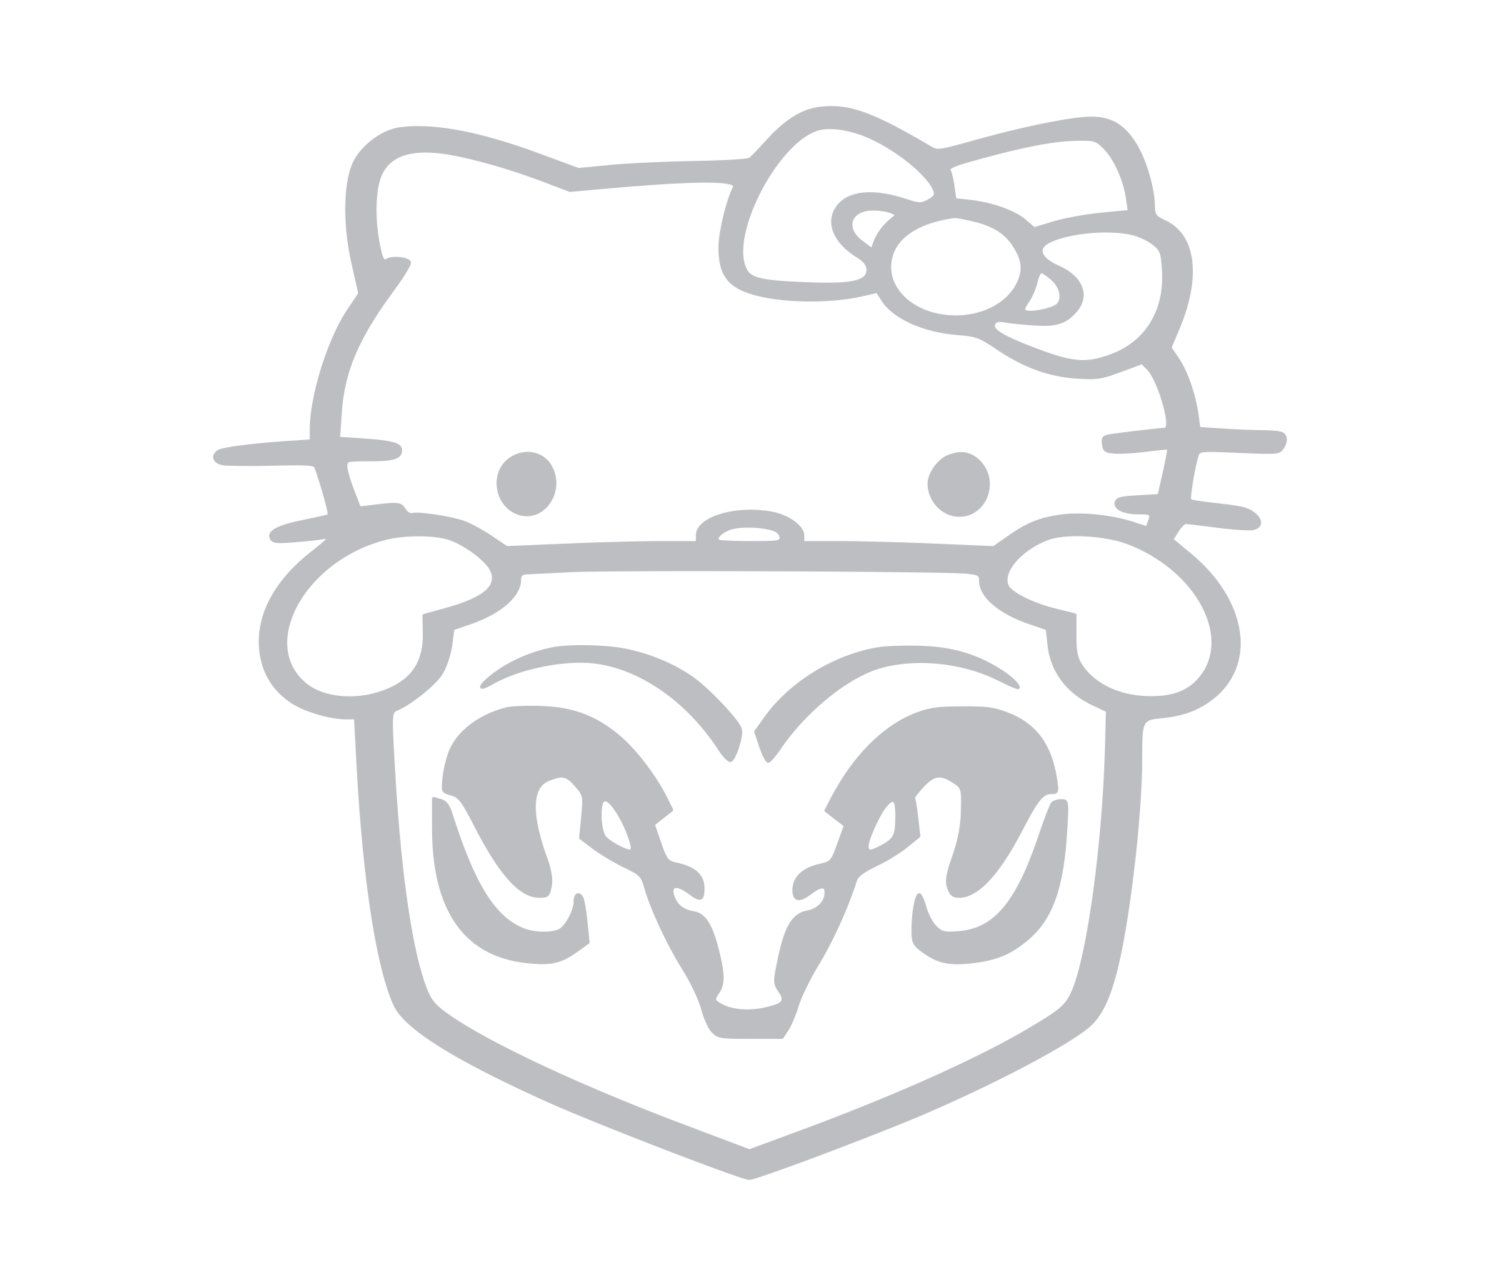 Dodge Ram Kitty Hello Kitty Vinyl DieCut Decals Cars - Hello kitty custom vinyl decals for car